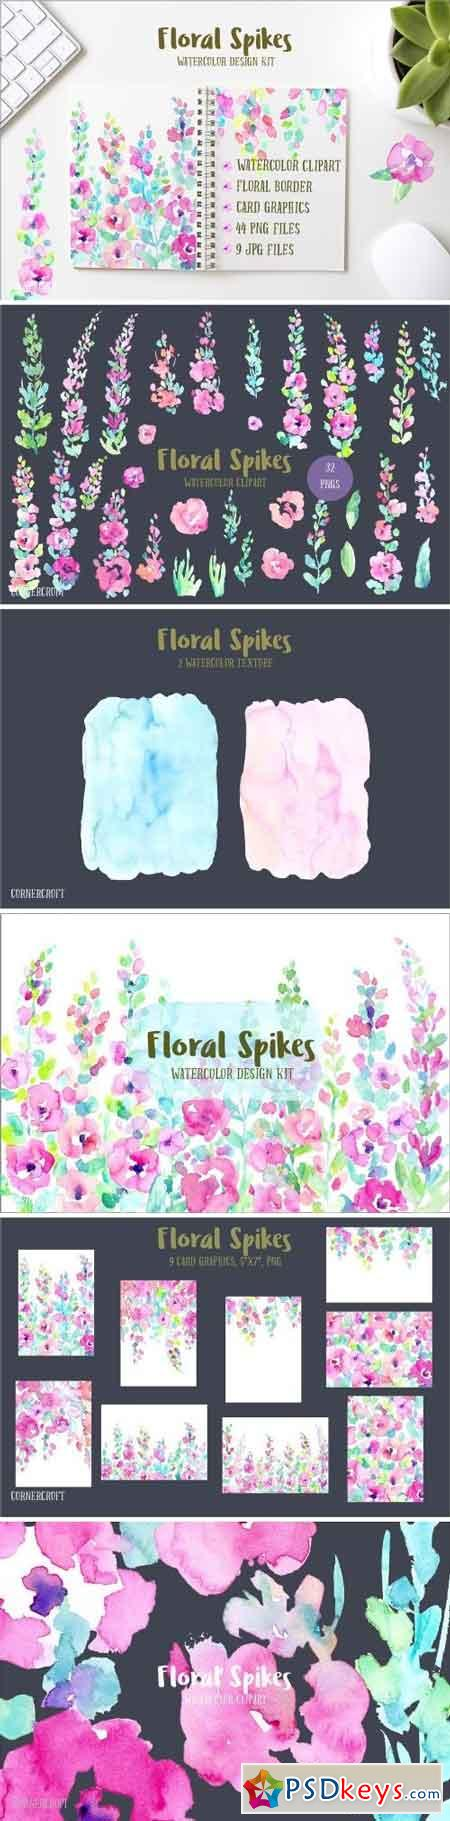 Watercolor Design Kit Floral Spikes 1602688